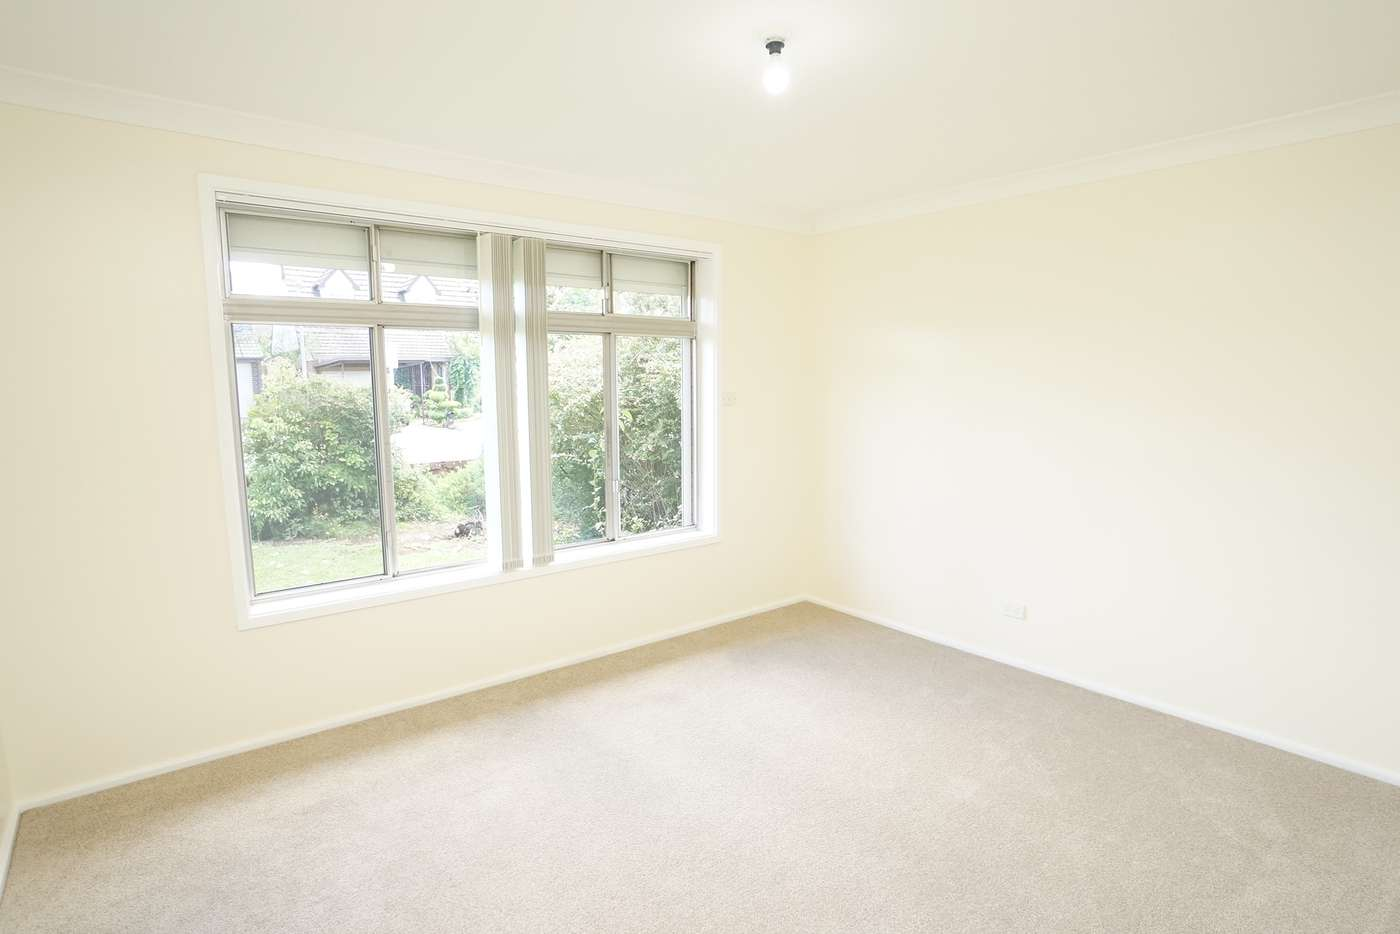 Seventh view of Homely house listing, 68 Kiora Street, Canley Heights NSW 2166